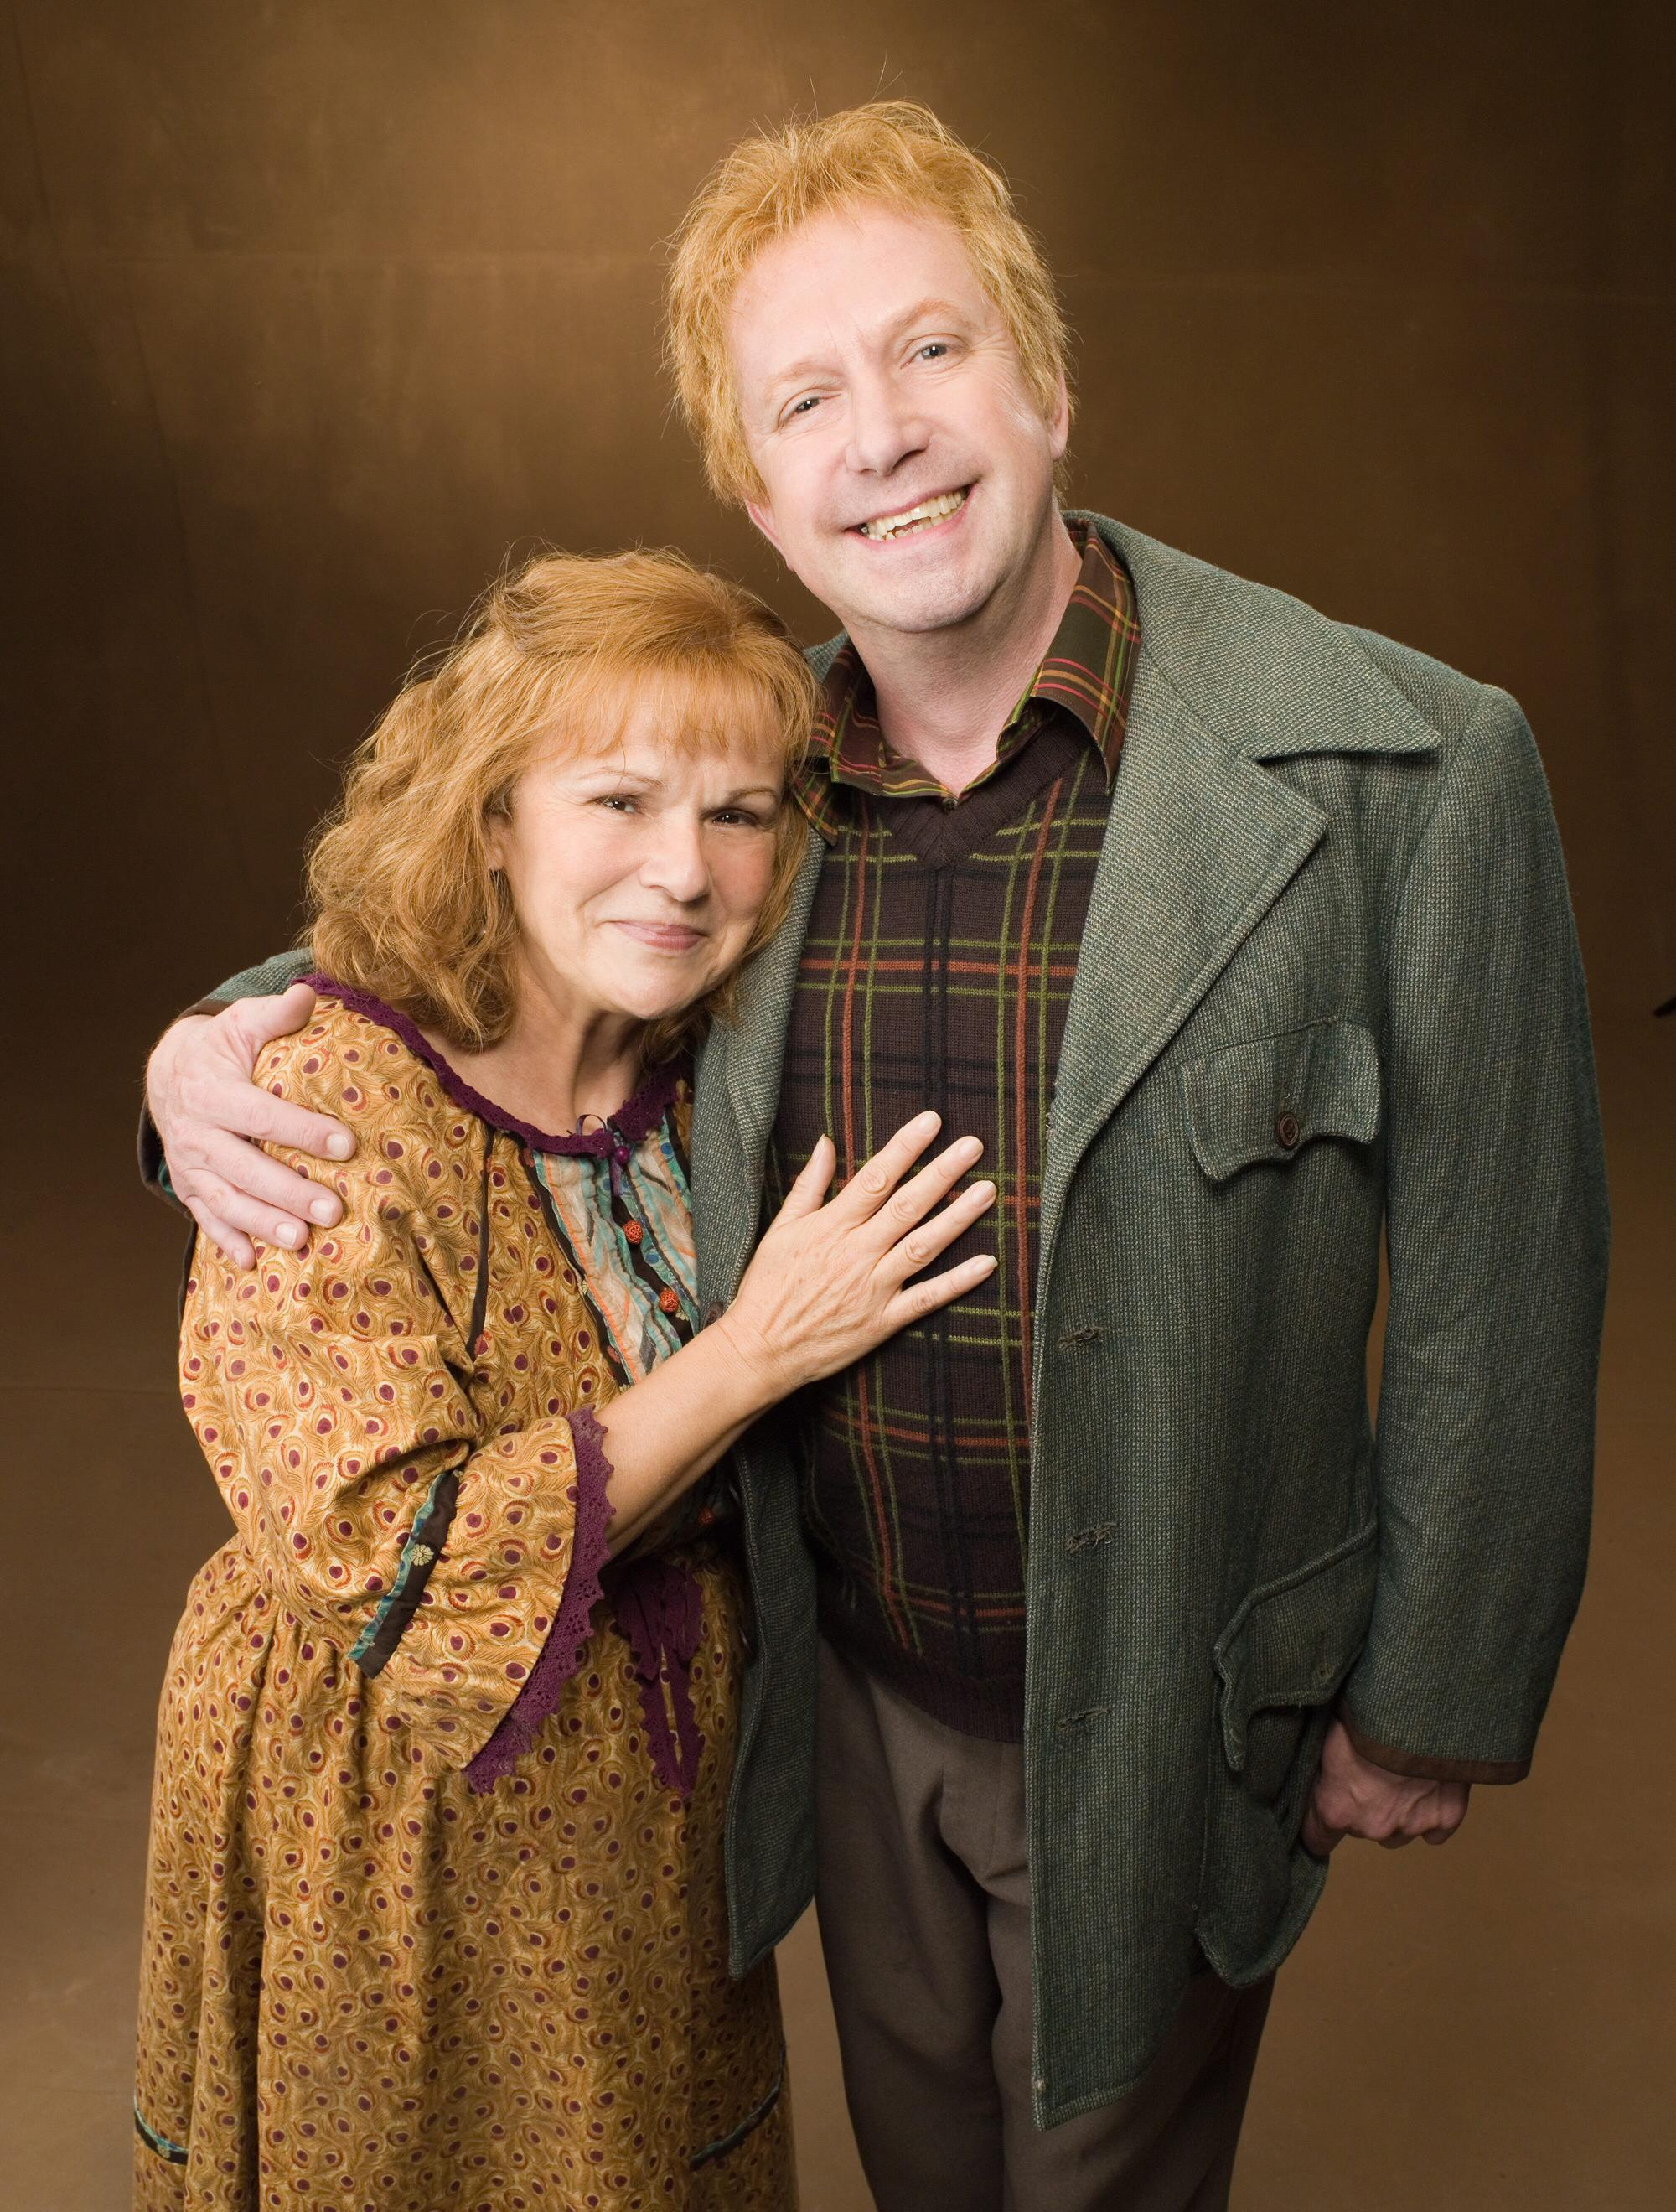 Molly_and_Arthur_Weasley__Promo_stills_from_Order_of_the_Phoenix_movie_.jpg